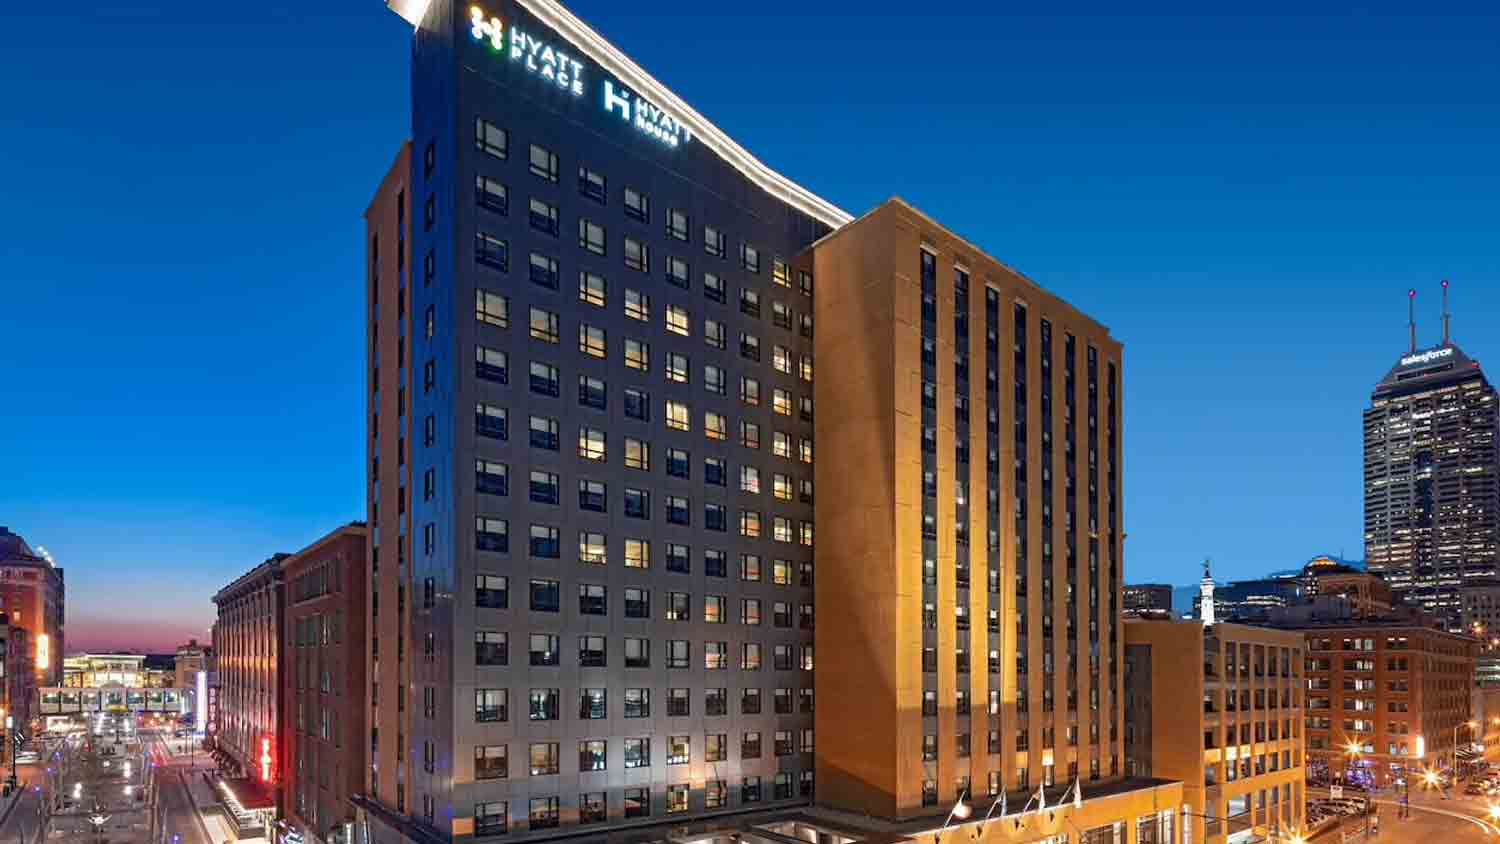 Hyatt Place Indianapolis Downtown 11